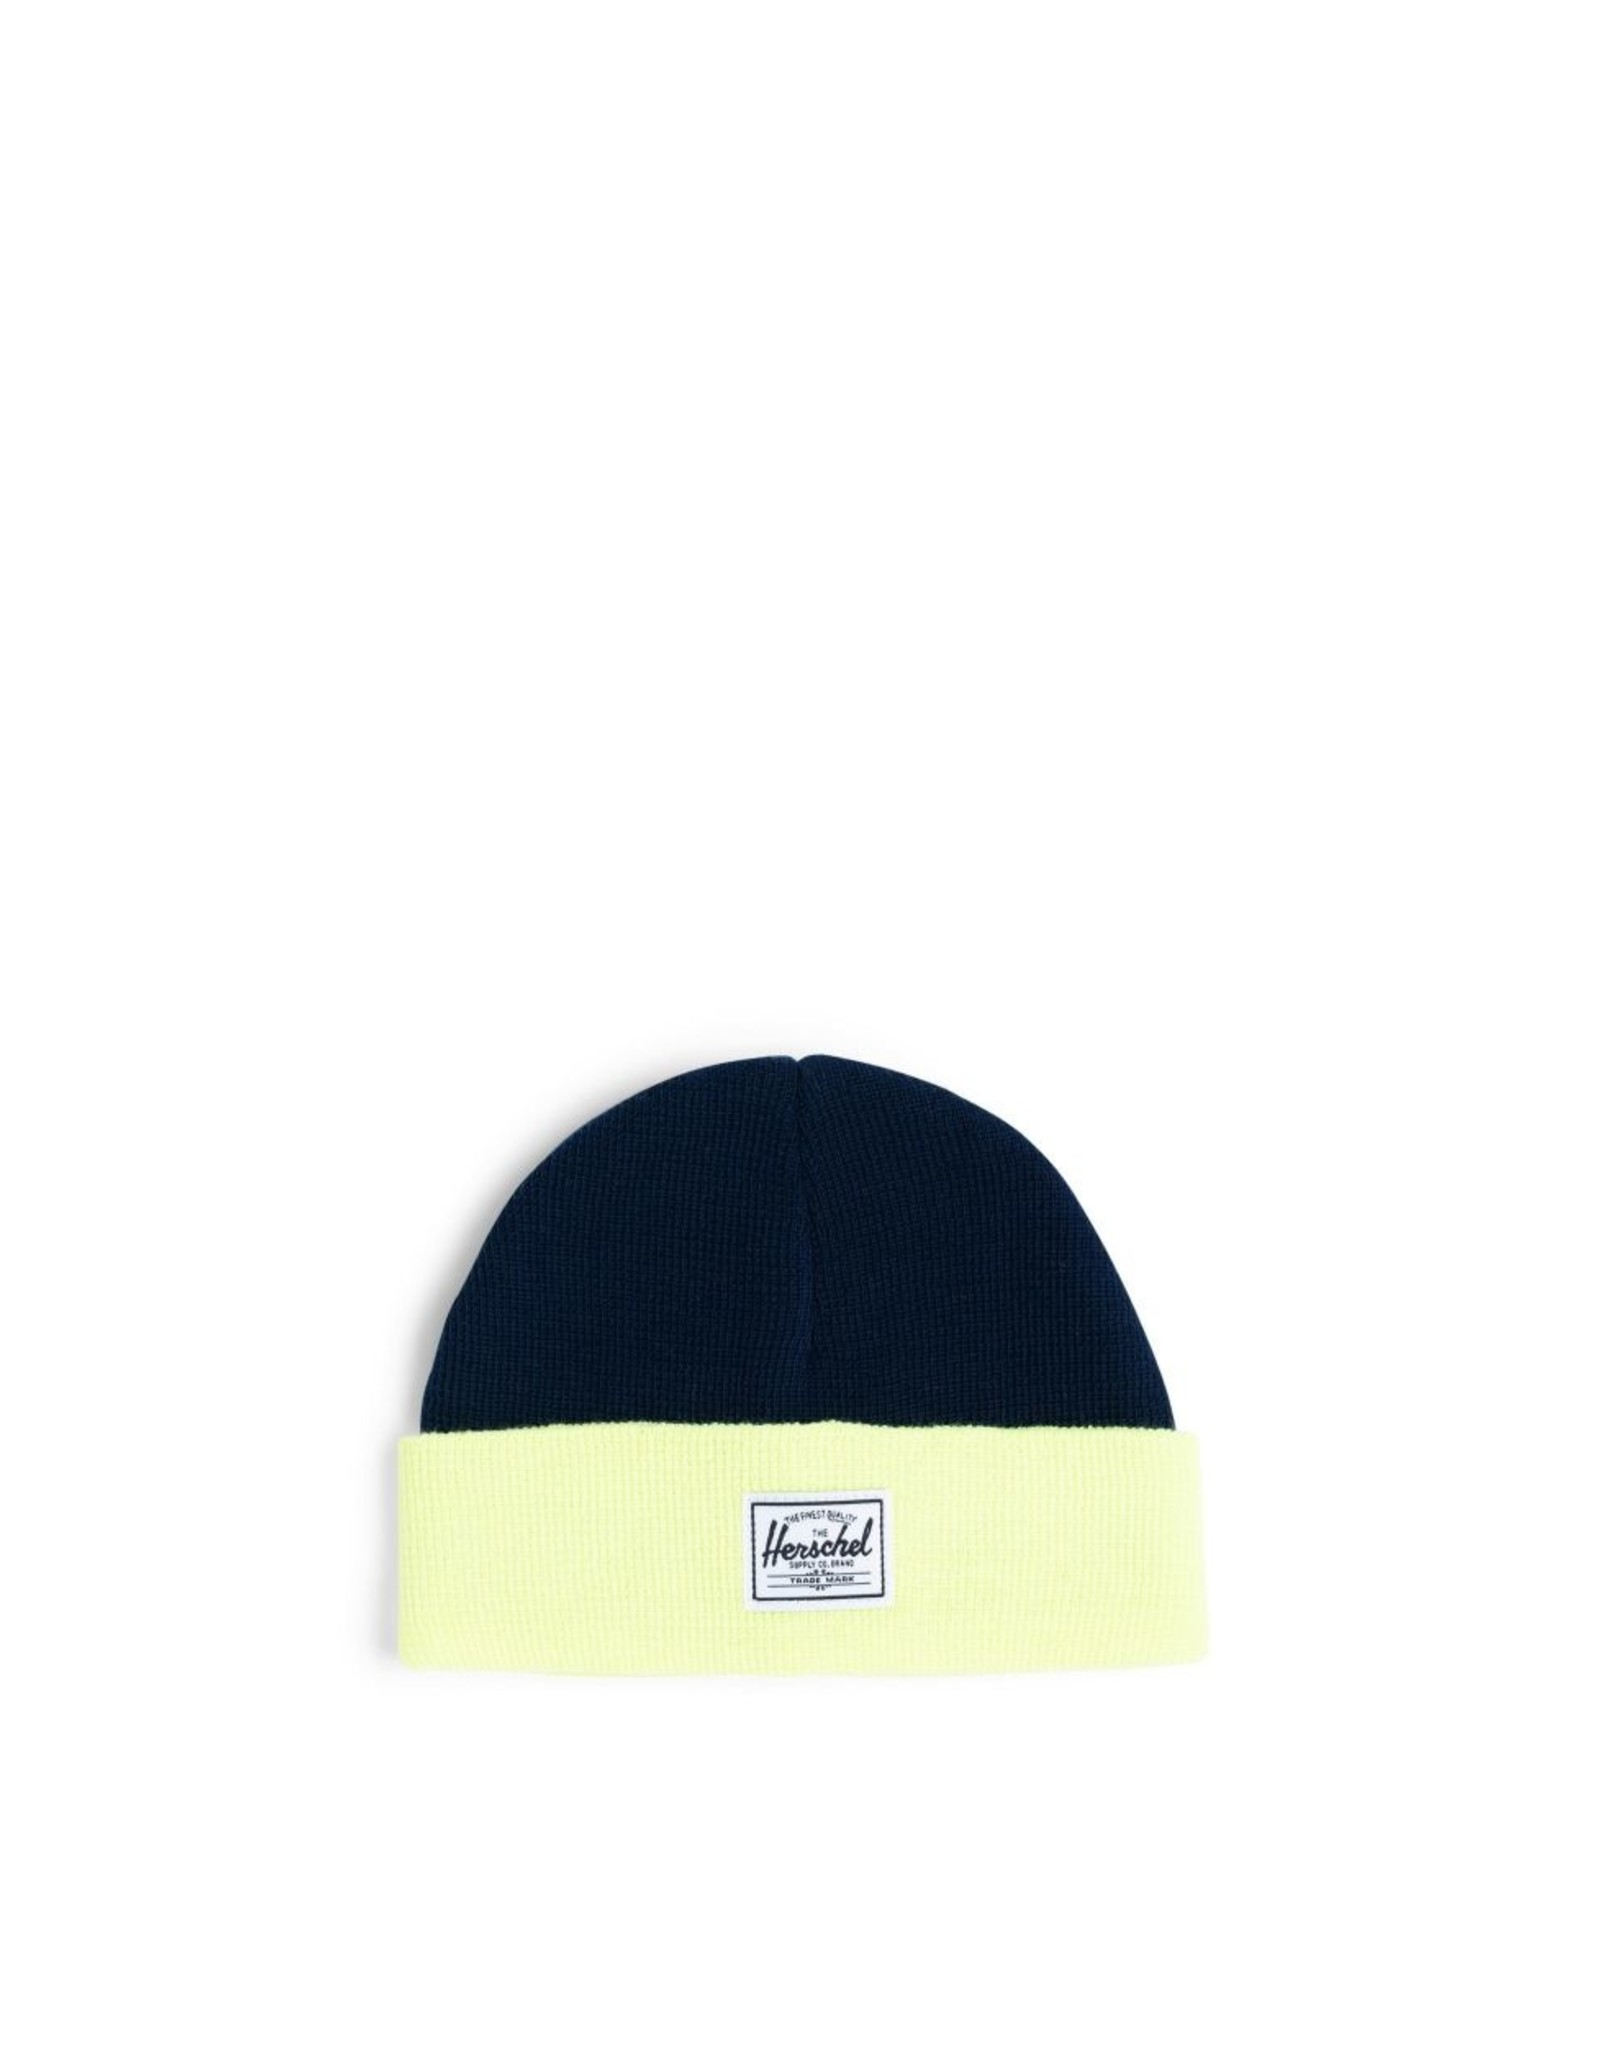 Herschel Supply Co. Sprout Beanie - Navy Peacoat/Highlight